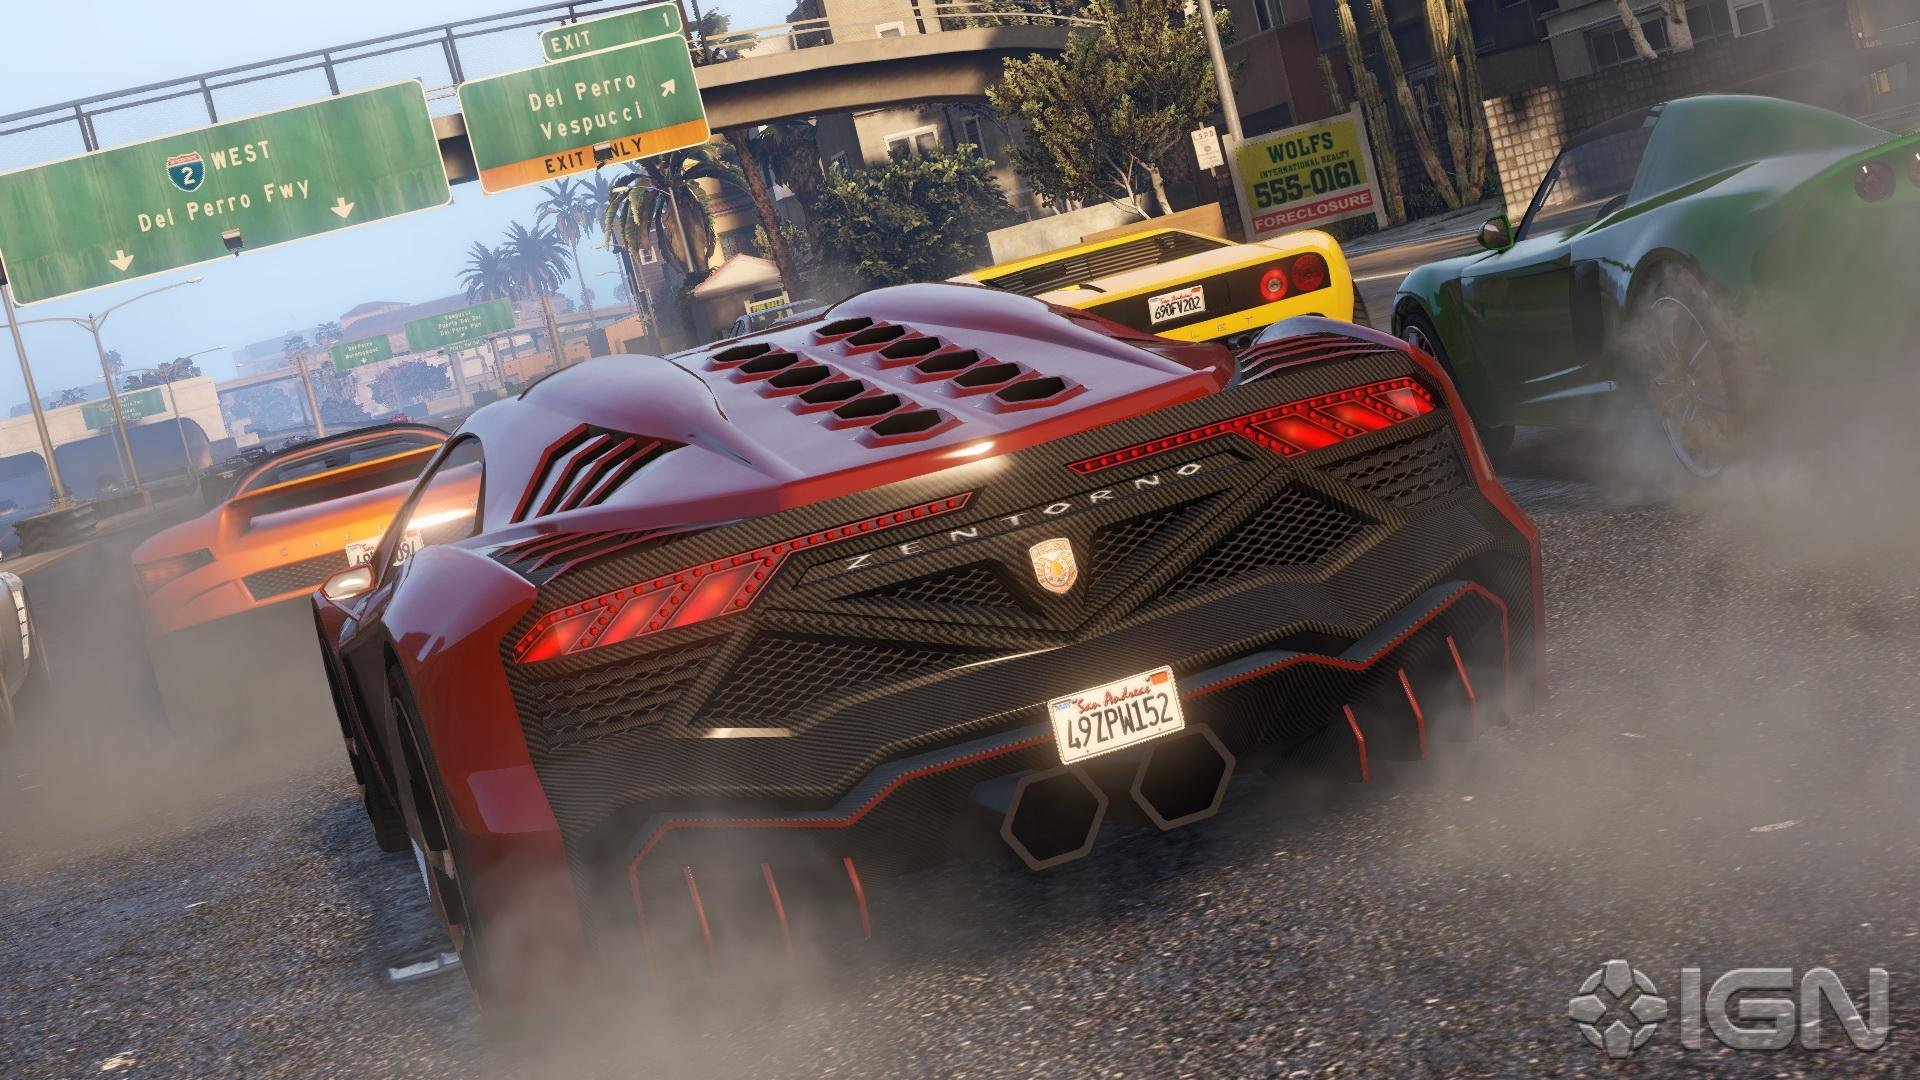 The Zentorno with have a license plate #GTAV http://t.co/iJDTEZjqeC